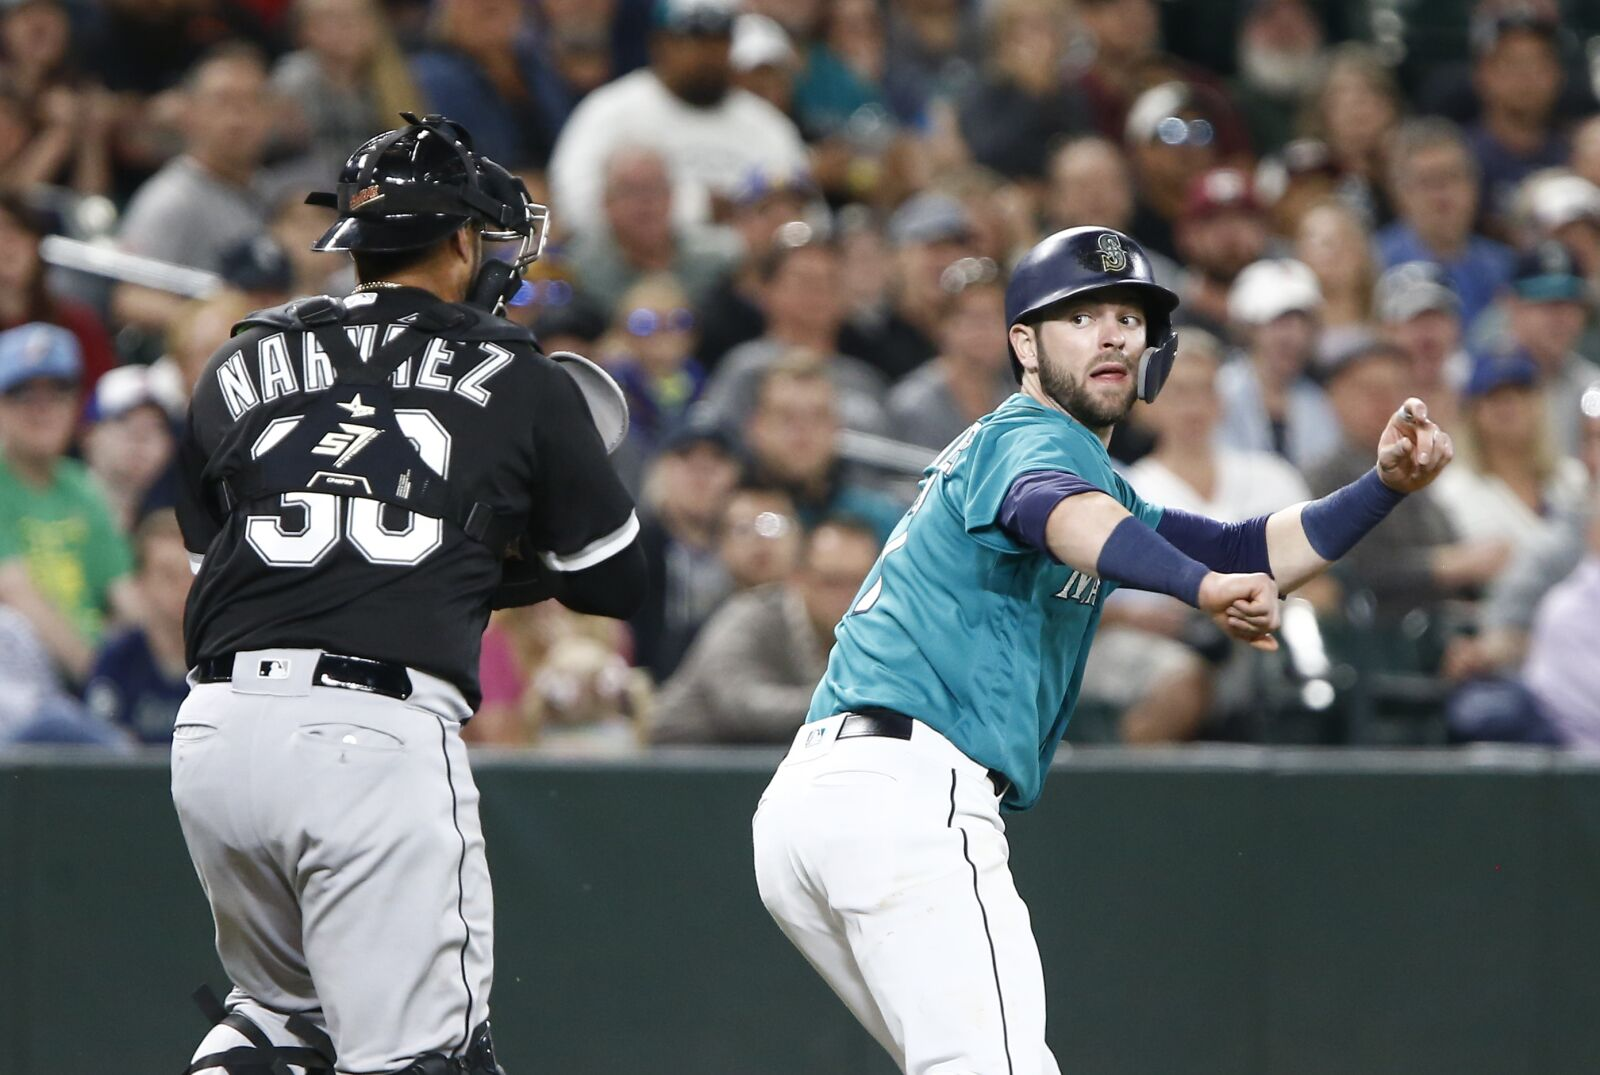 Seattle Mariners will start 2020 without Mitch Haniger